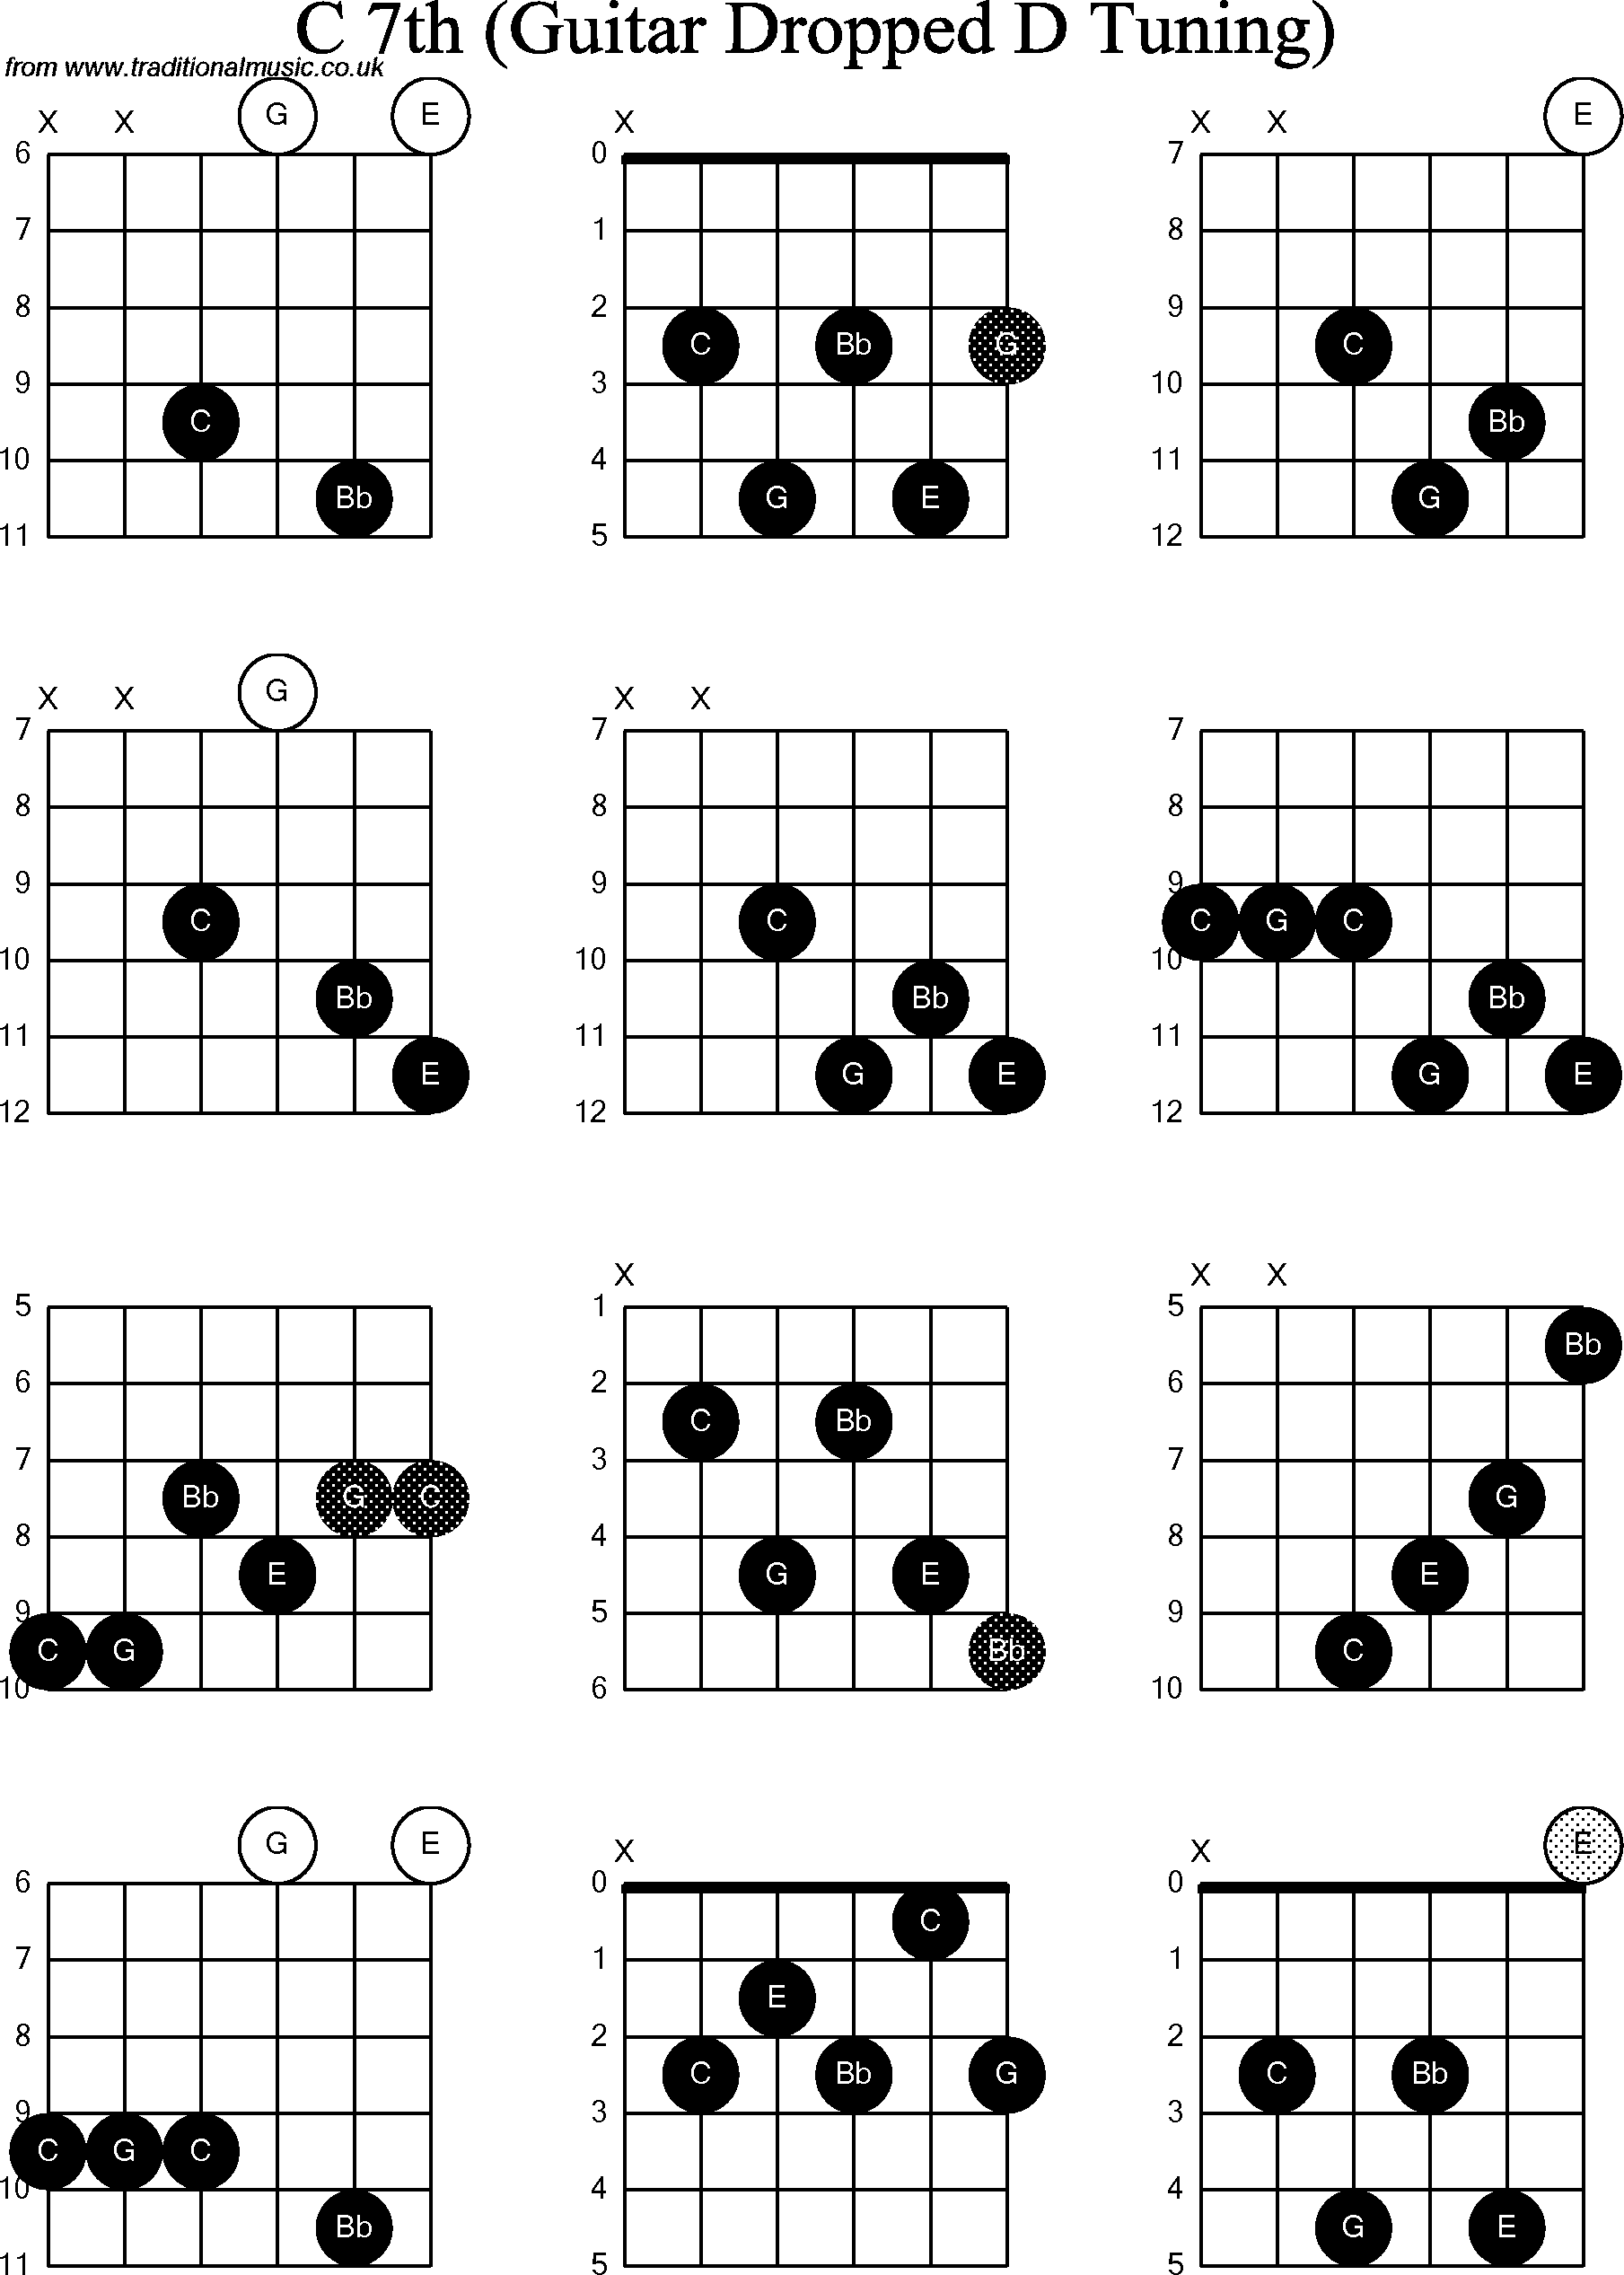 chord diagrams for dropped d guitar dadgbe   c7th